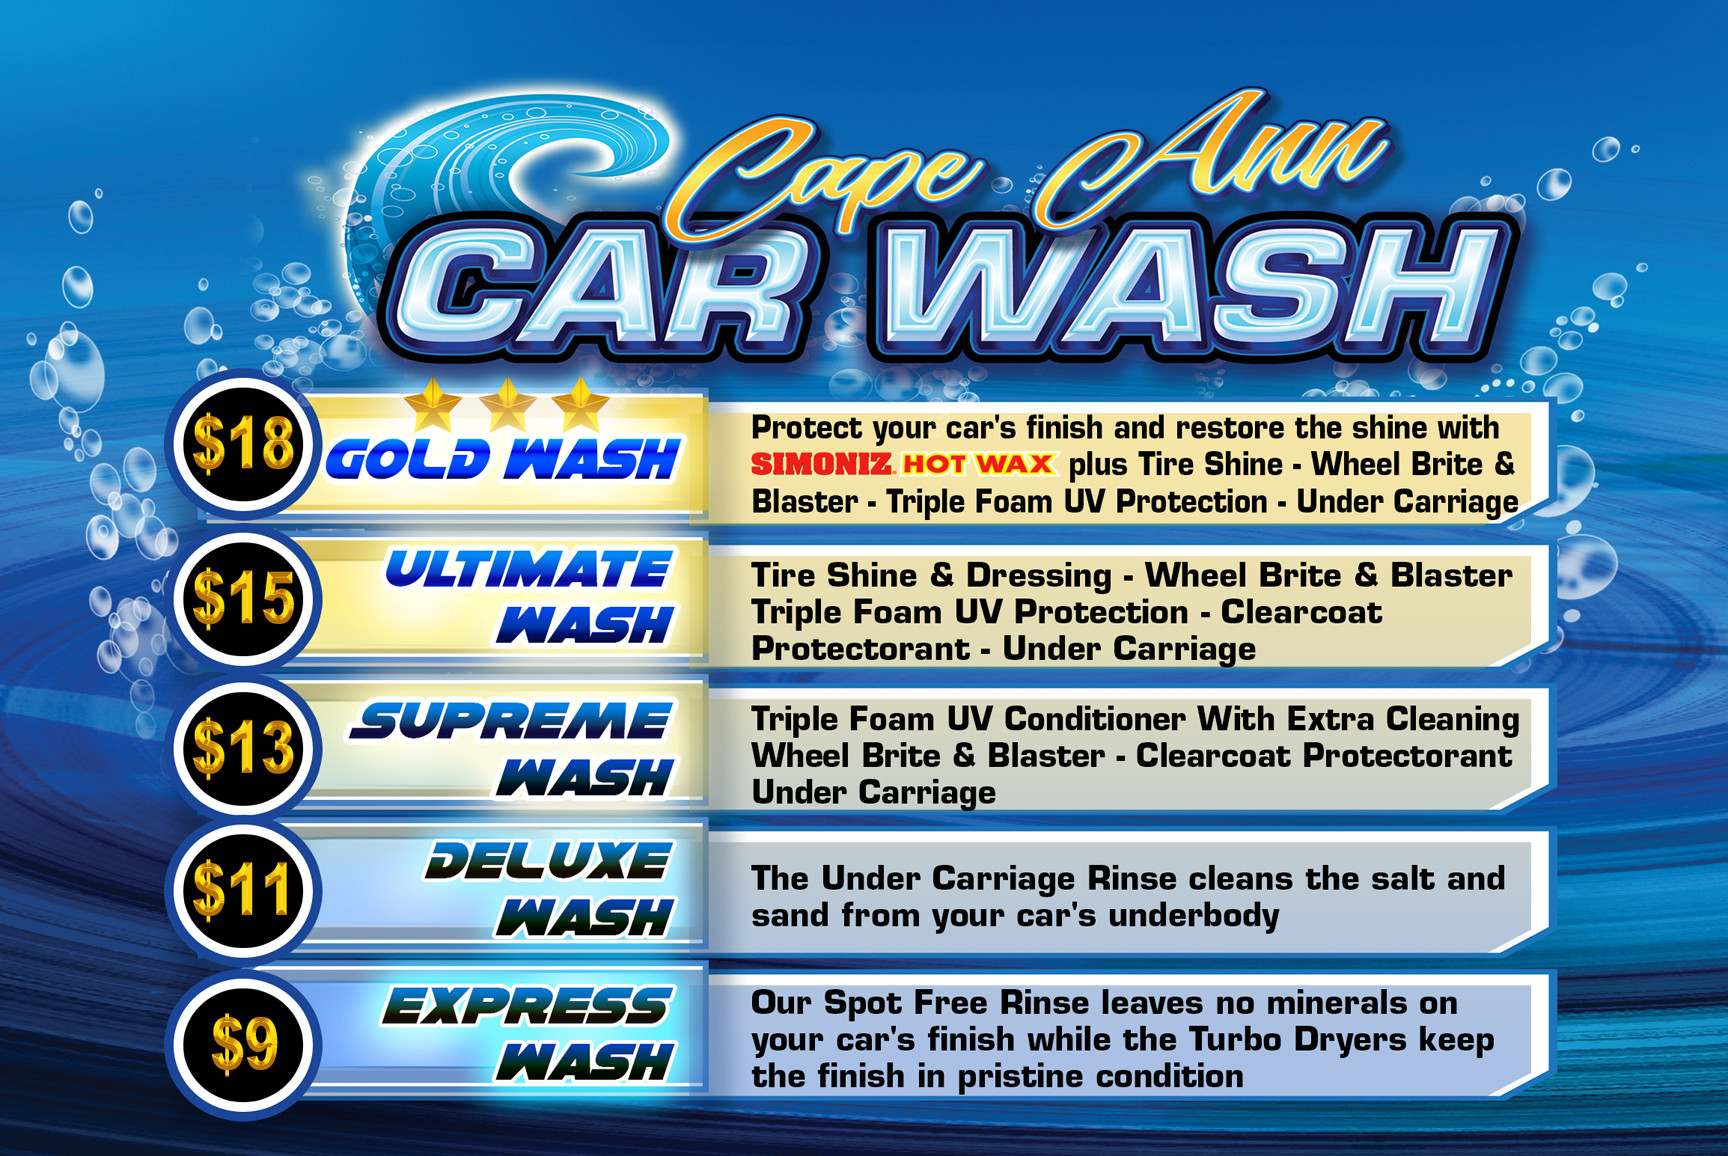 Car Wash Prices: Cape Ann Car Wash